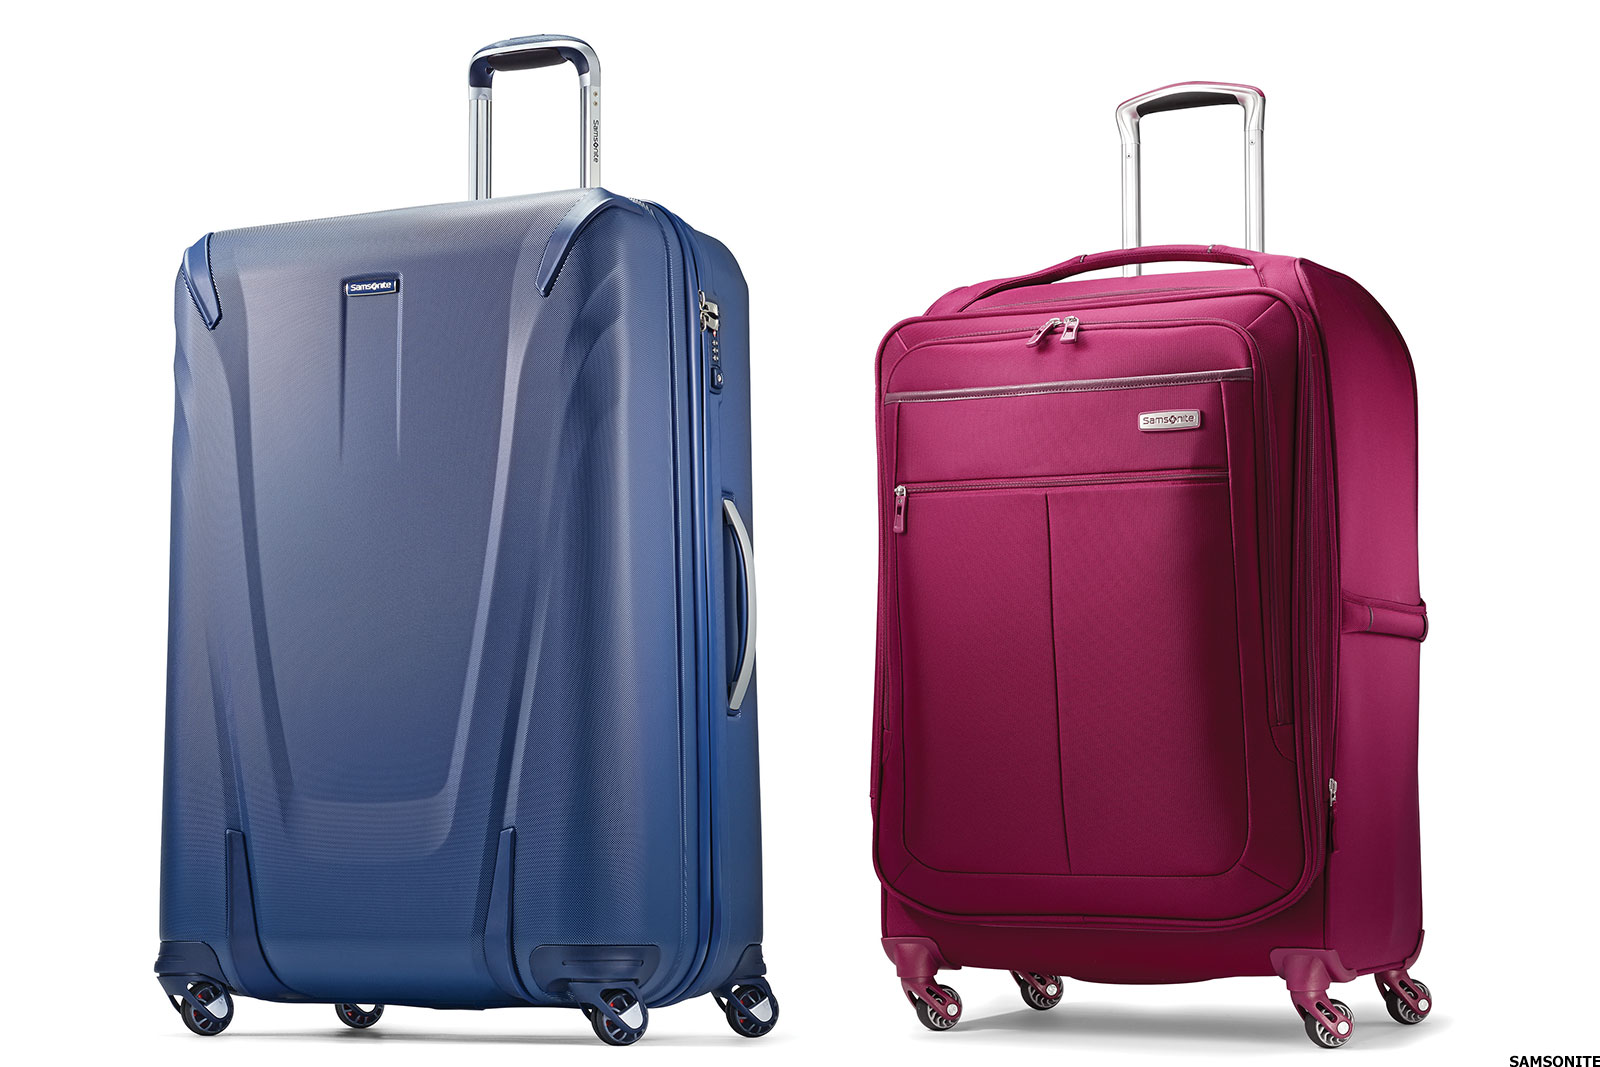 8e8d2f808635 The Best Luggage for Different Travel Needs - TheStreet